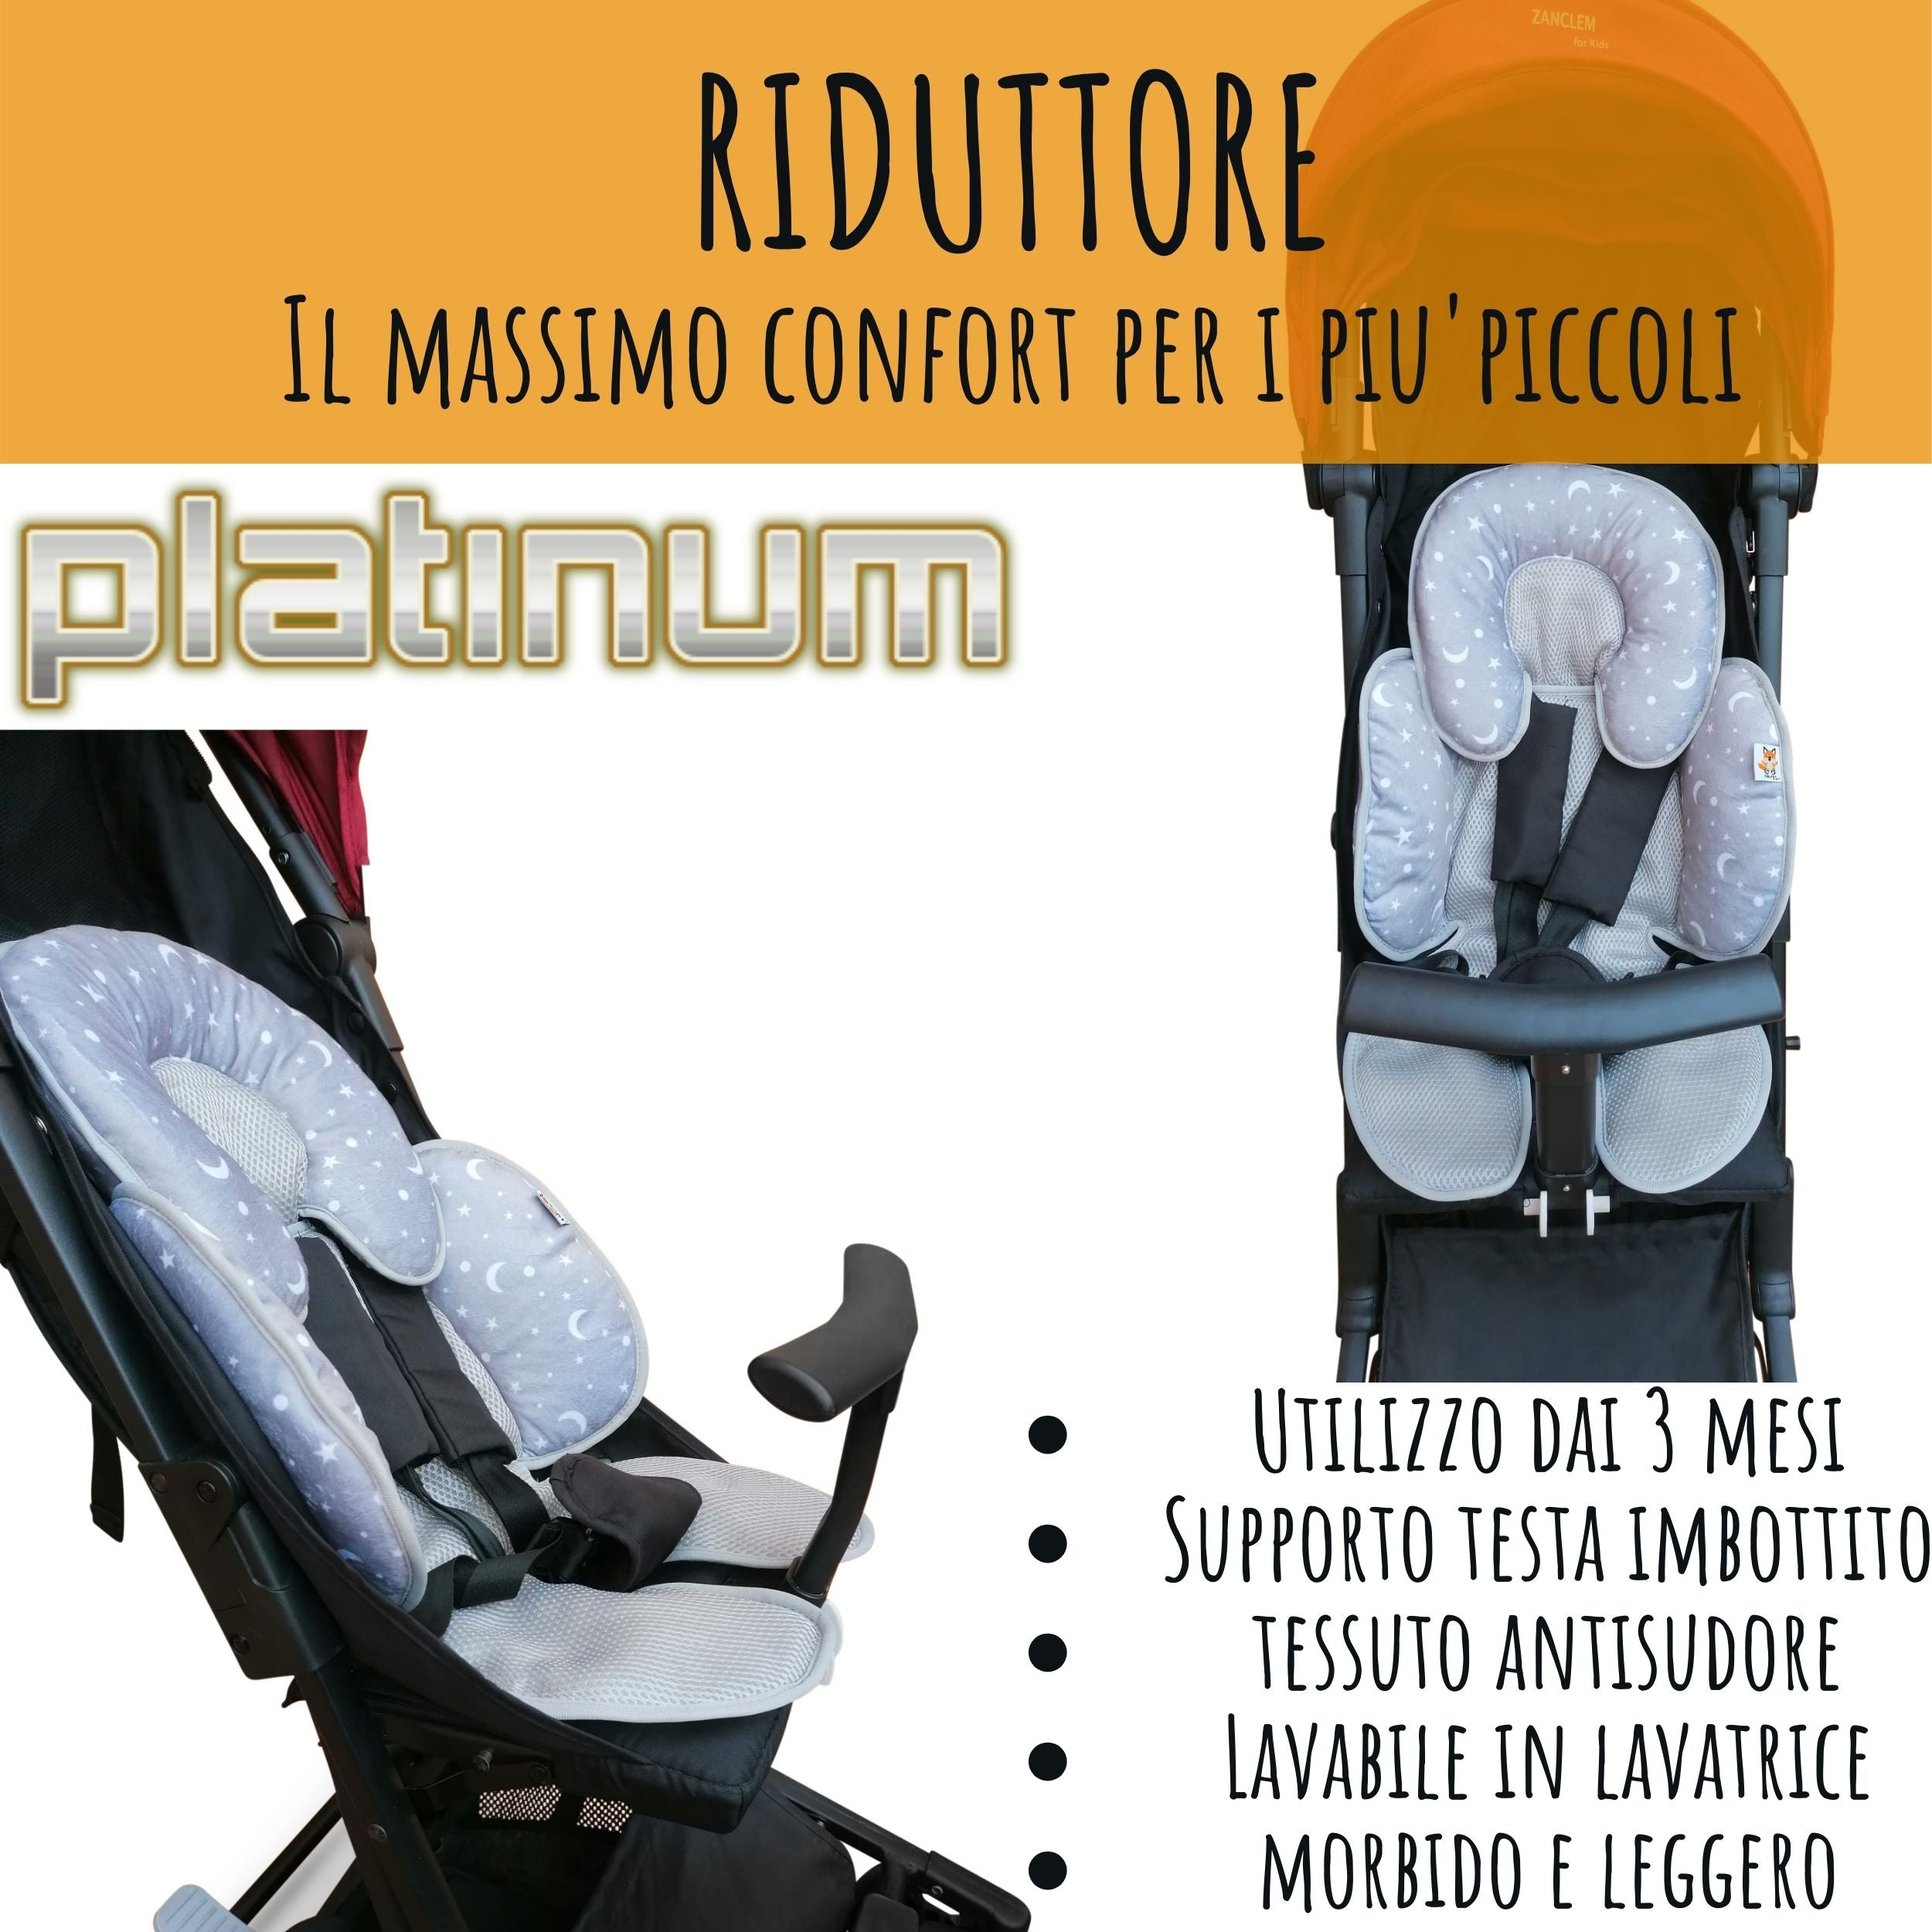 PassegginoPiuma0+ Ultraleggero, Compatto, Robusto, Reclinabile e Super Accessoriato!